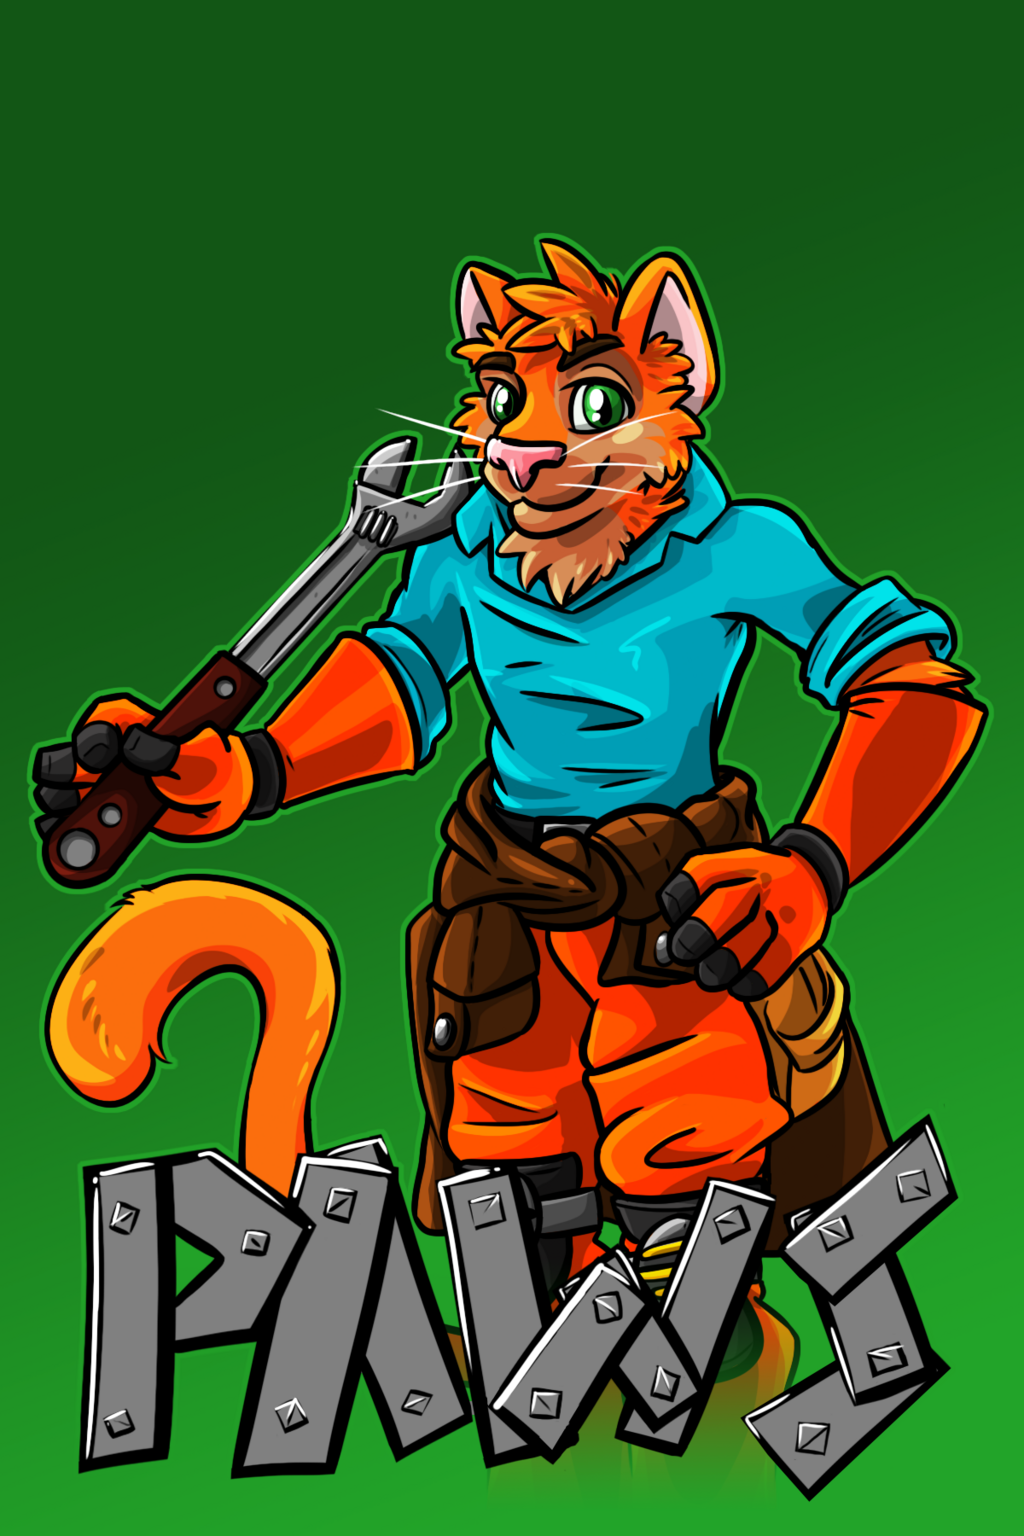 Most recent image: Paws Badge (Commission)